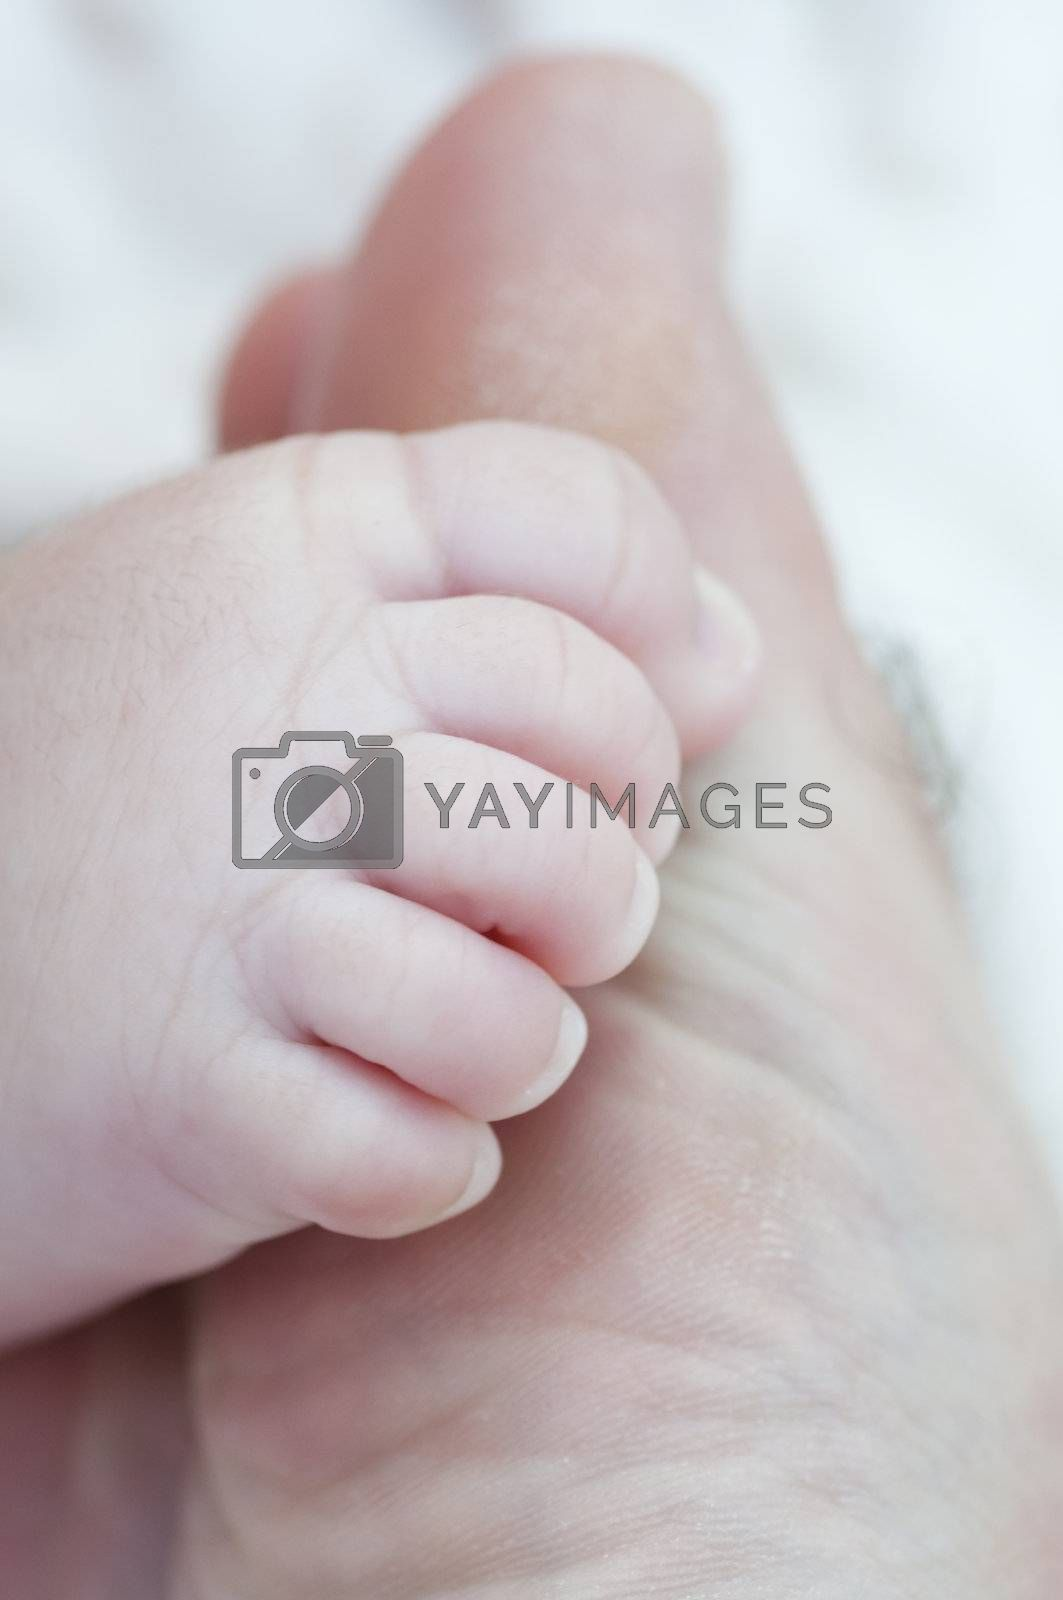 Picture of a new born foot.